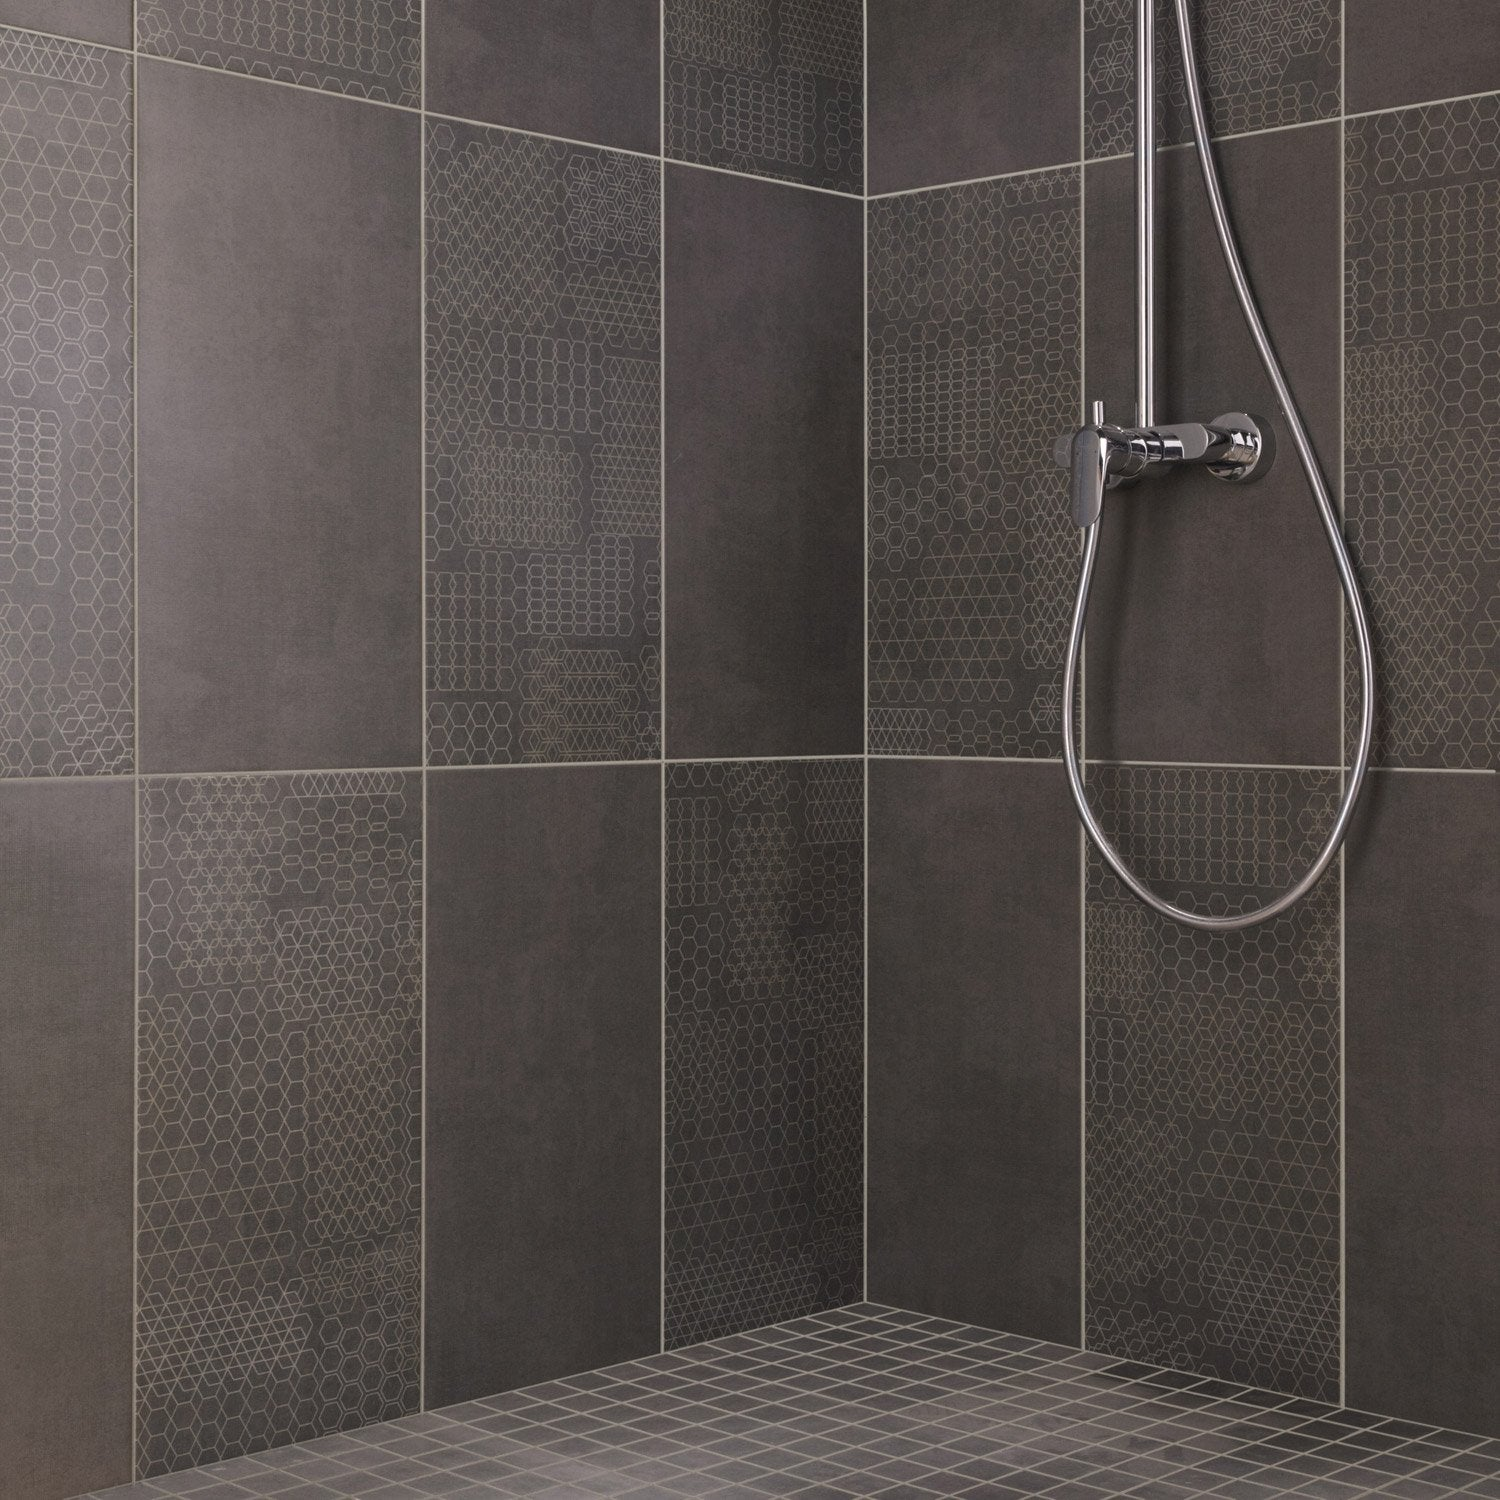 Fa ence mur anthracite tweed x cm leroy merlin for Salle de bain vert kaki